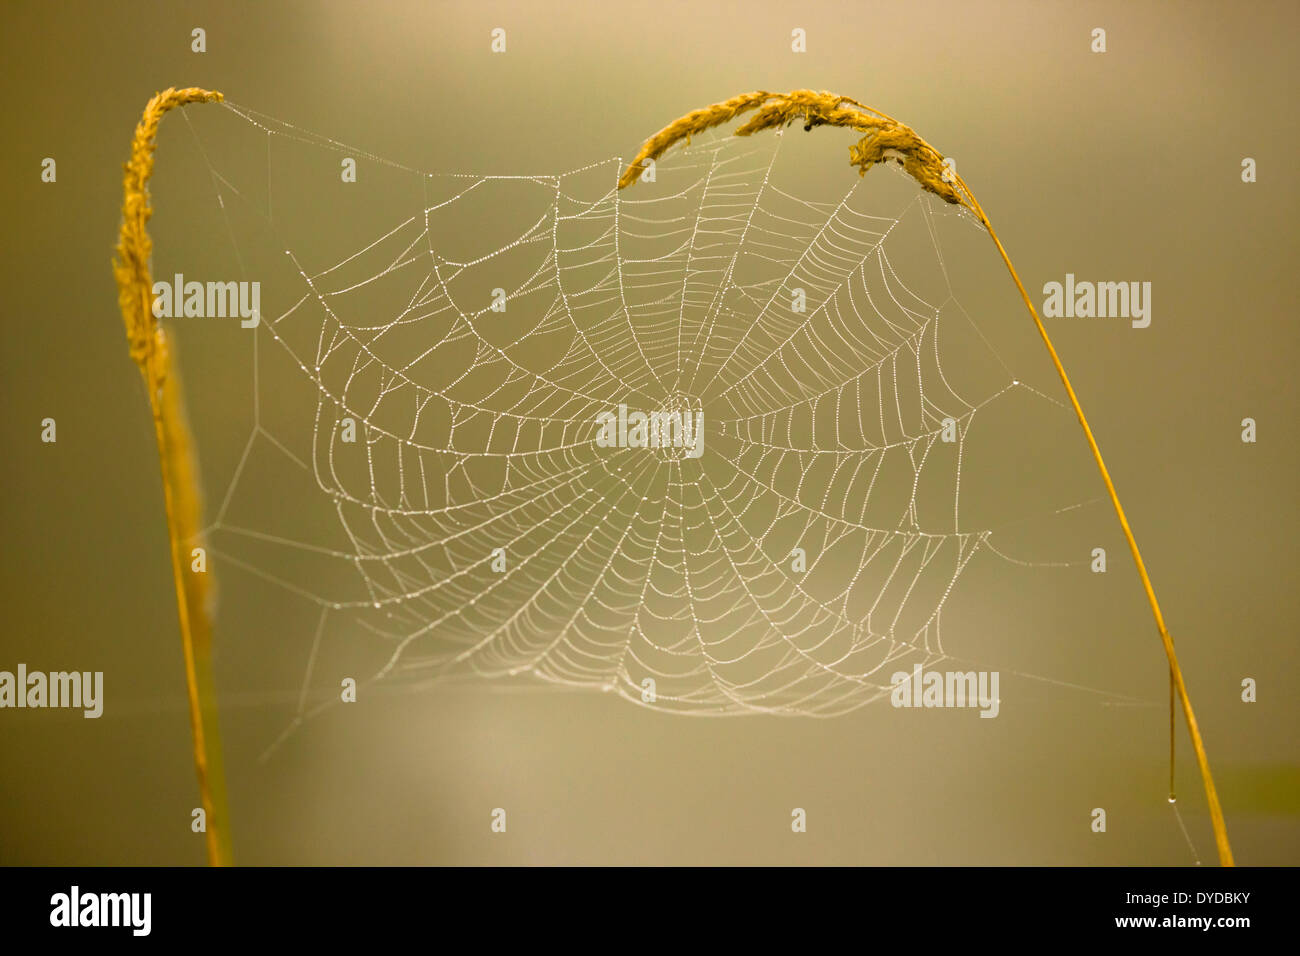 Cobweb between two ears of grass. - Stock Image